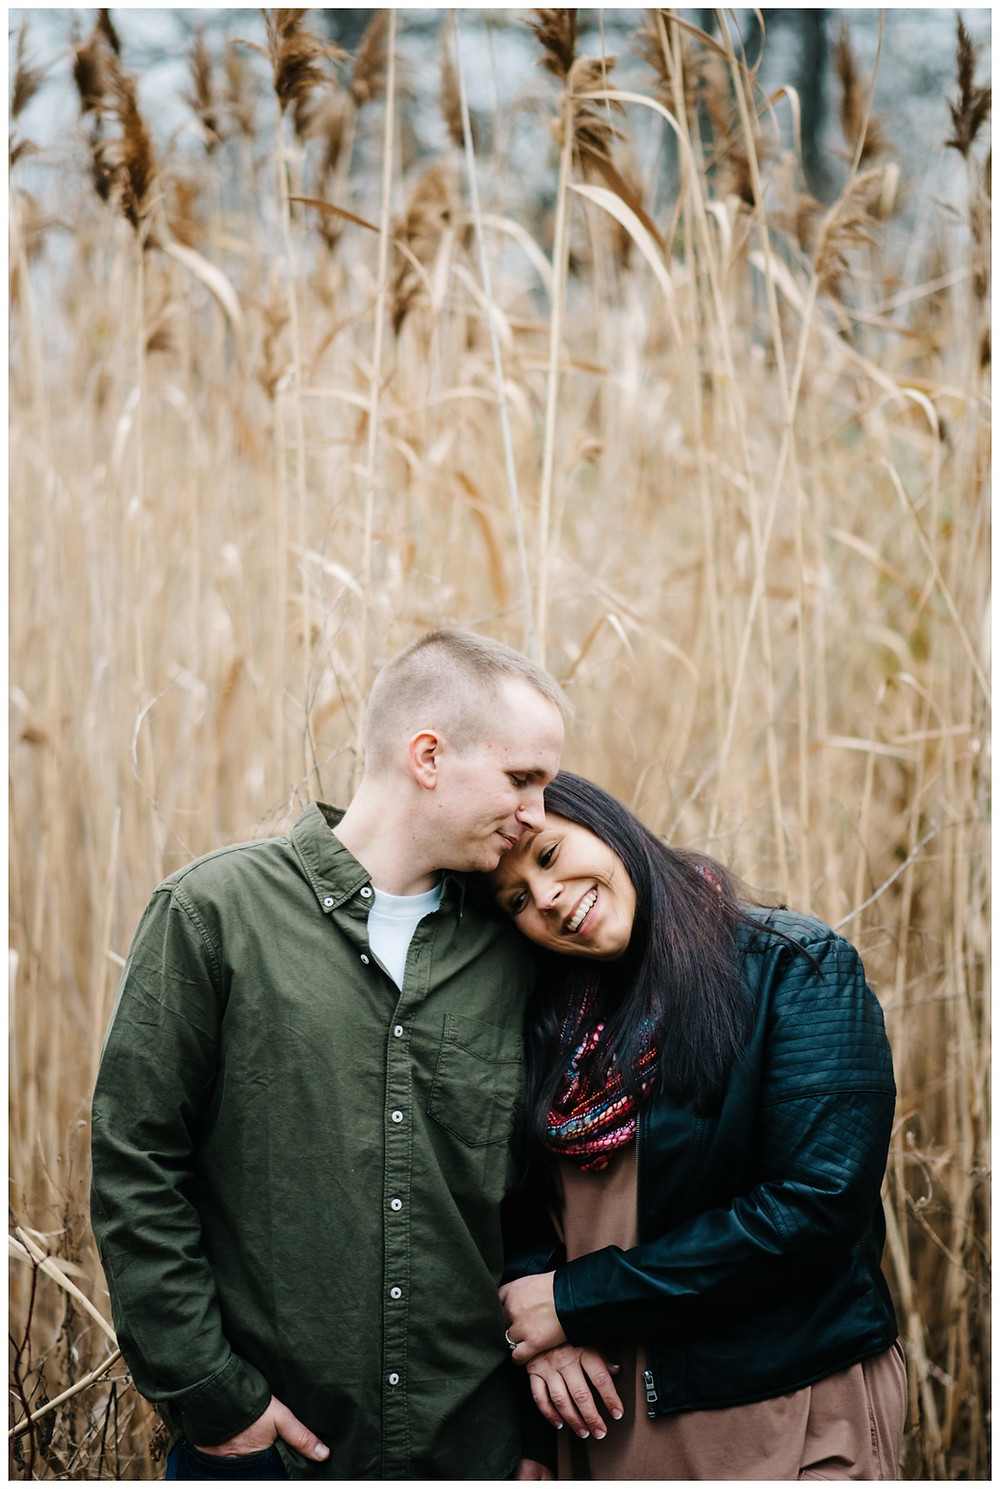 engaged-couple-cozy-together-in-wheat-field-at-green-bay-engagement-session-by-appleton-wedding-photographer-kyra-rane-photography